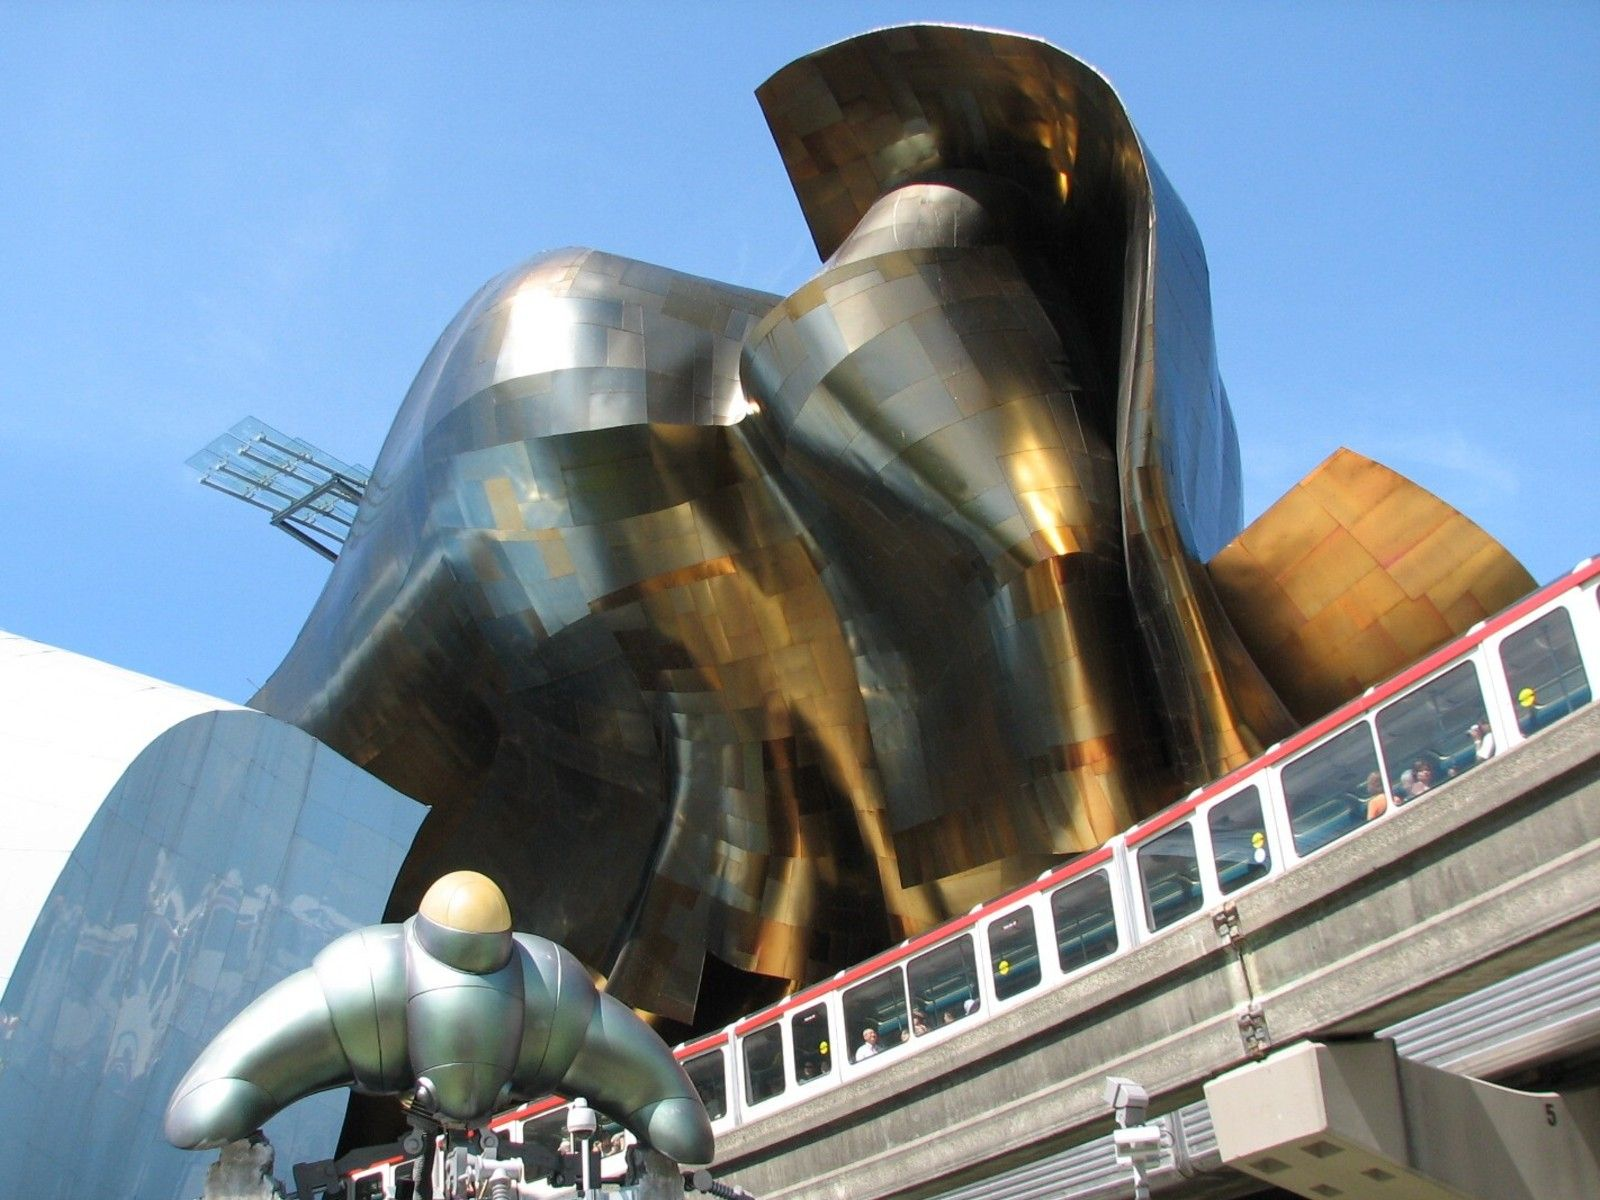 Museum: Experience Music Project And Science Fiction Museum And Hall Of Fame  Location: Seattle, Washington Architect: Frank Gehry Completed: 2000